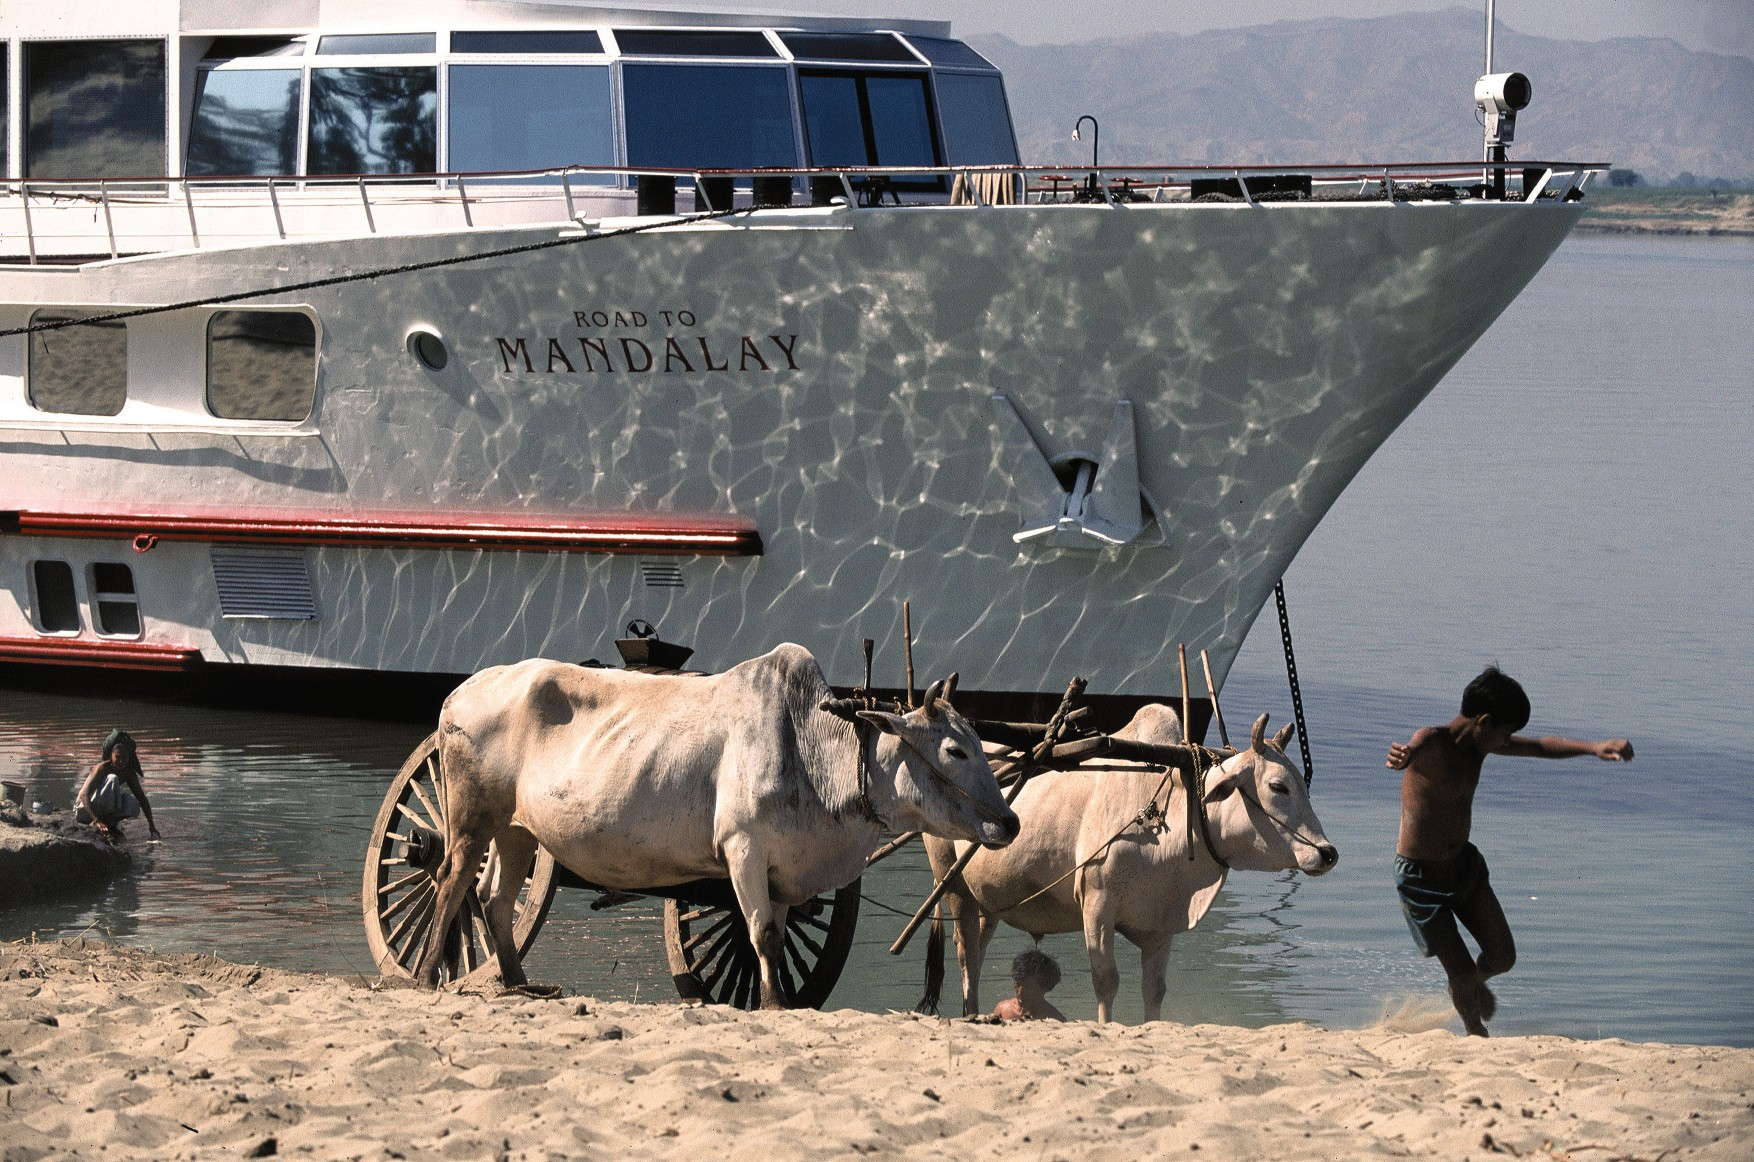 Belmond River Cruises Road to Mandalay Exterior View from Land 4.jpg